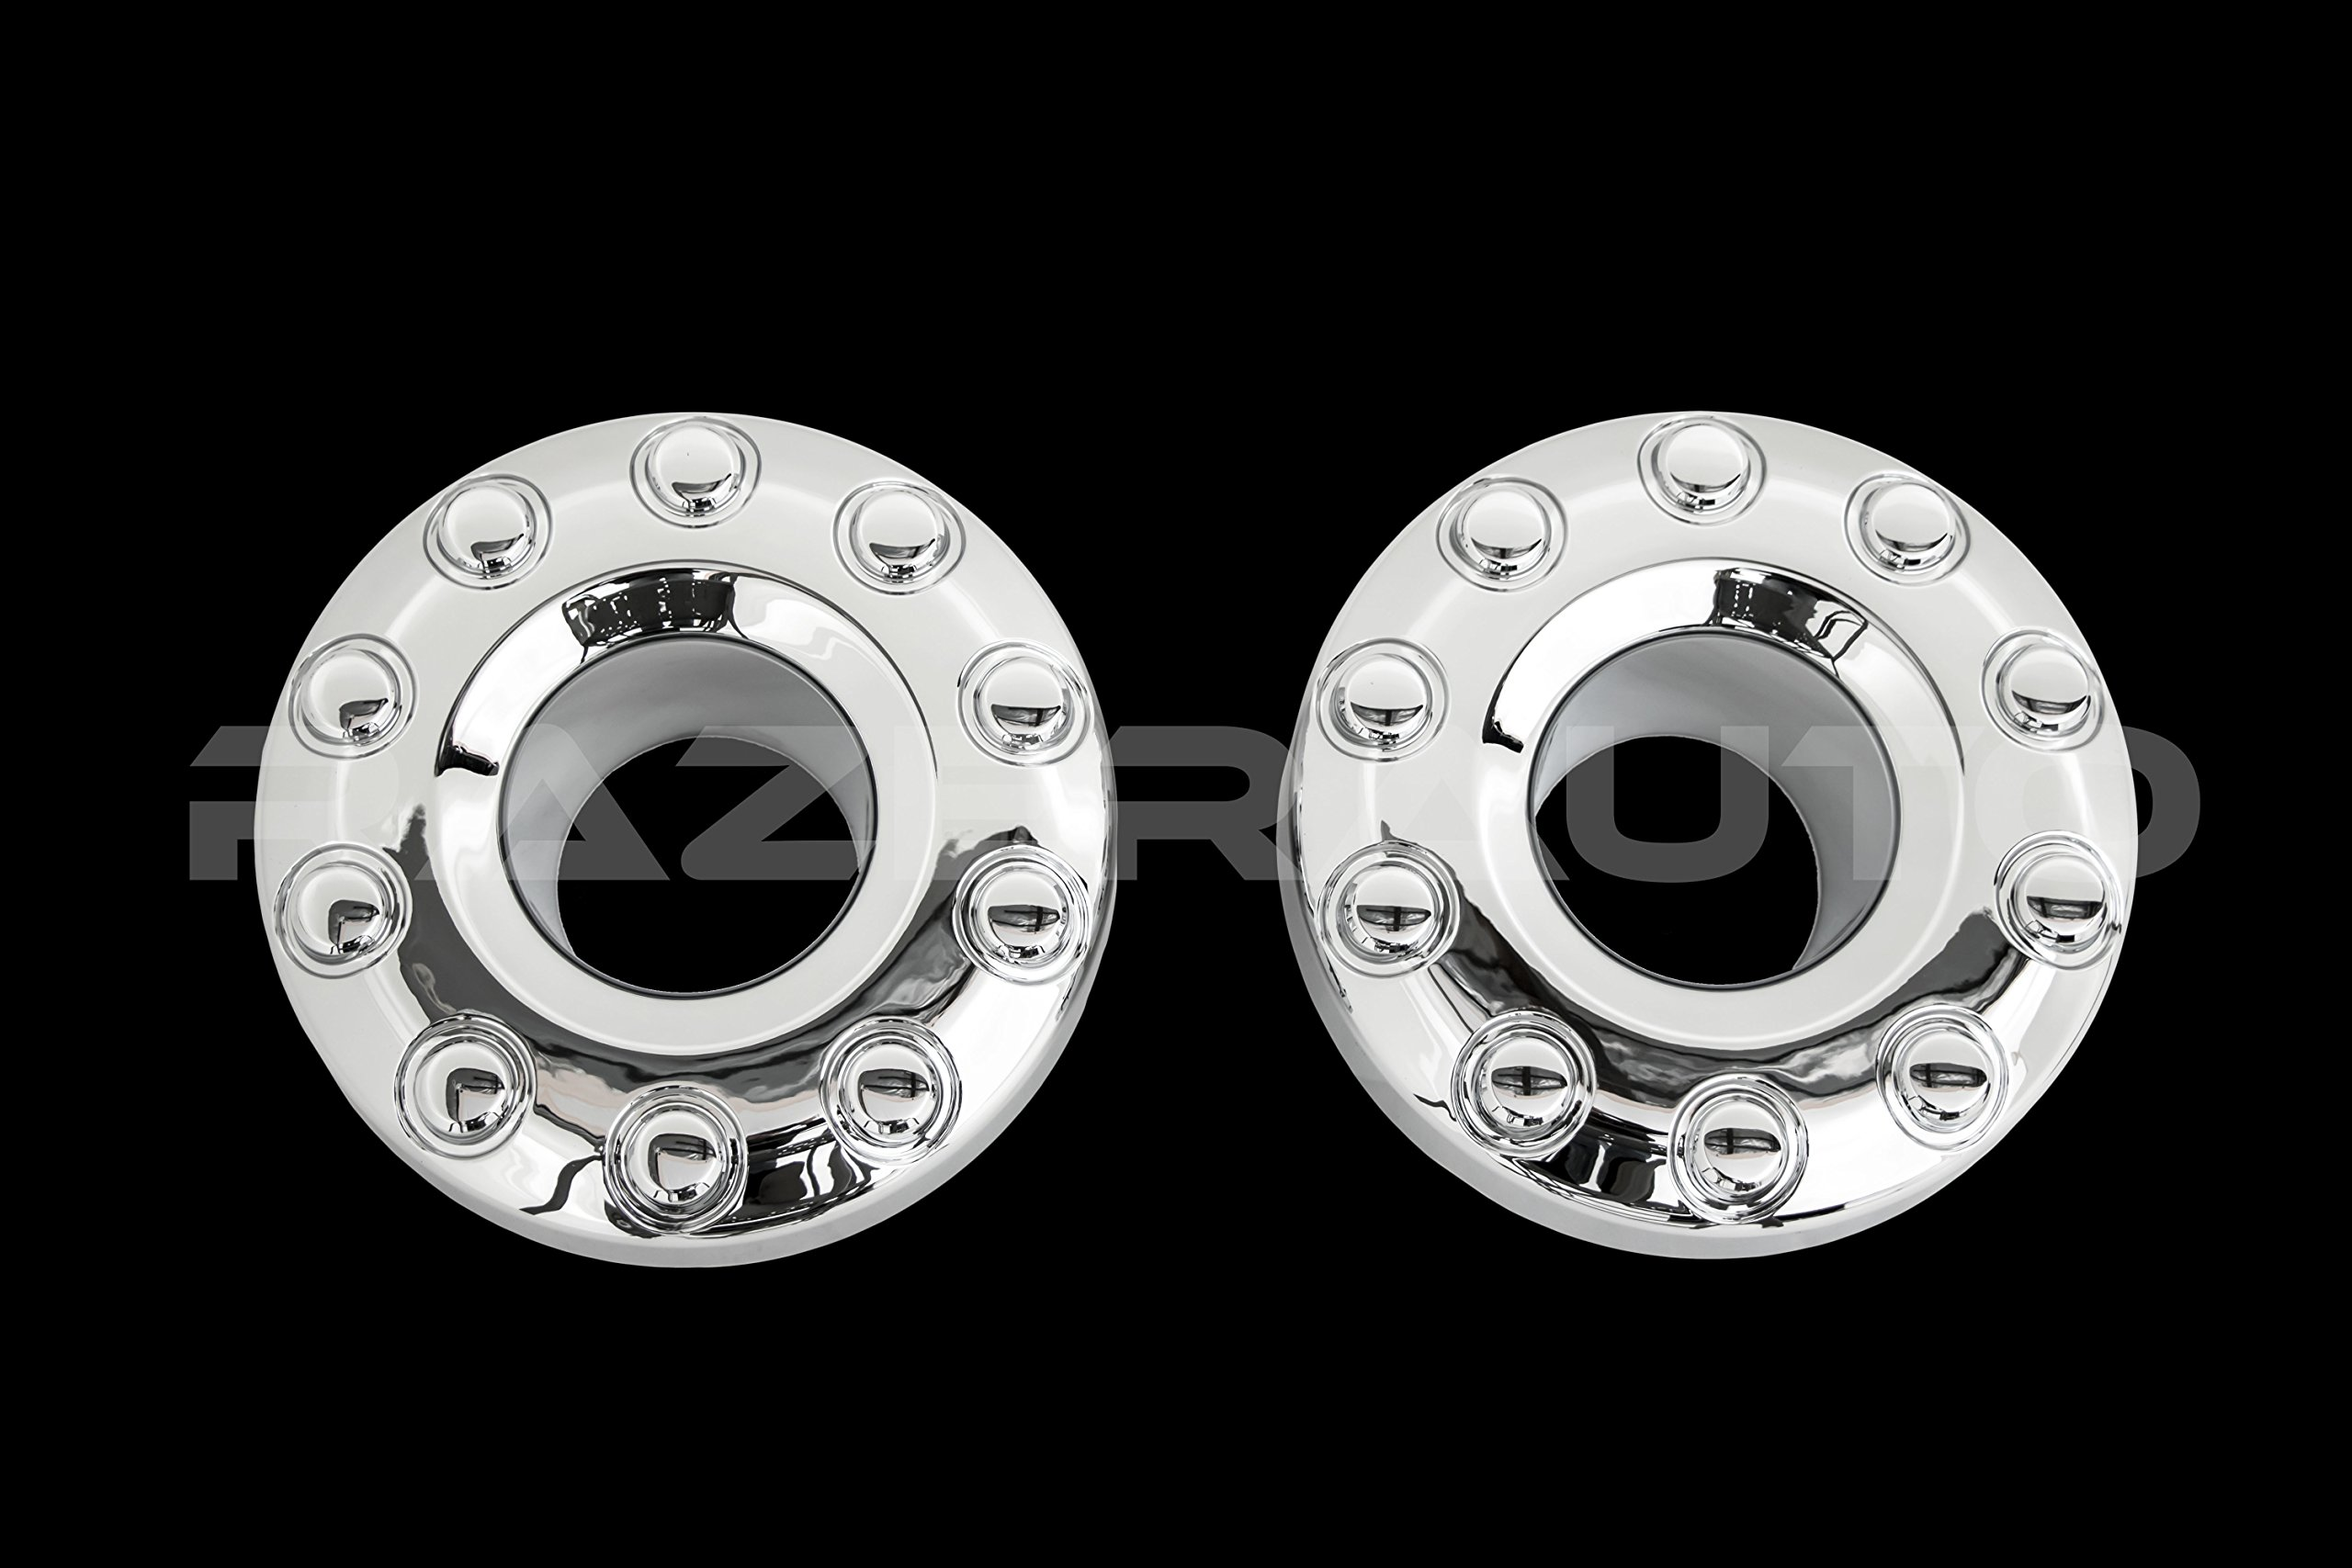 05-17 Ford Super Duty F350+F450+F550 Dually Truck ONLY Chrome 10 Lug FRONT Wheel Center Hub Cap 1 PAIR